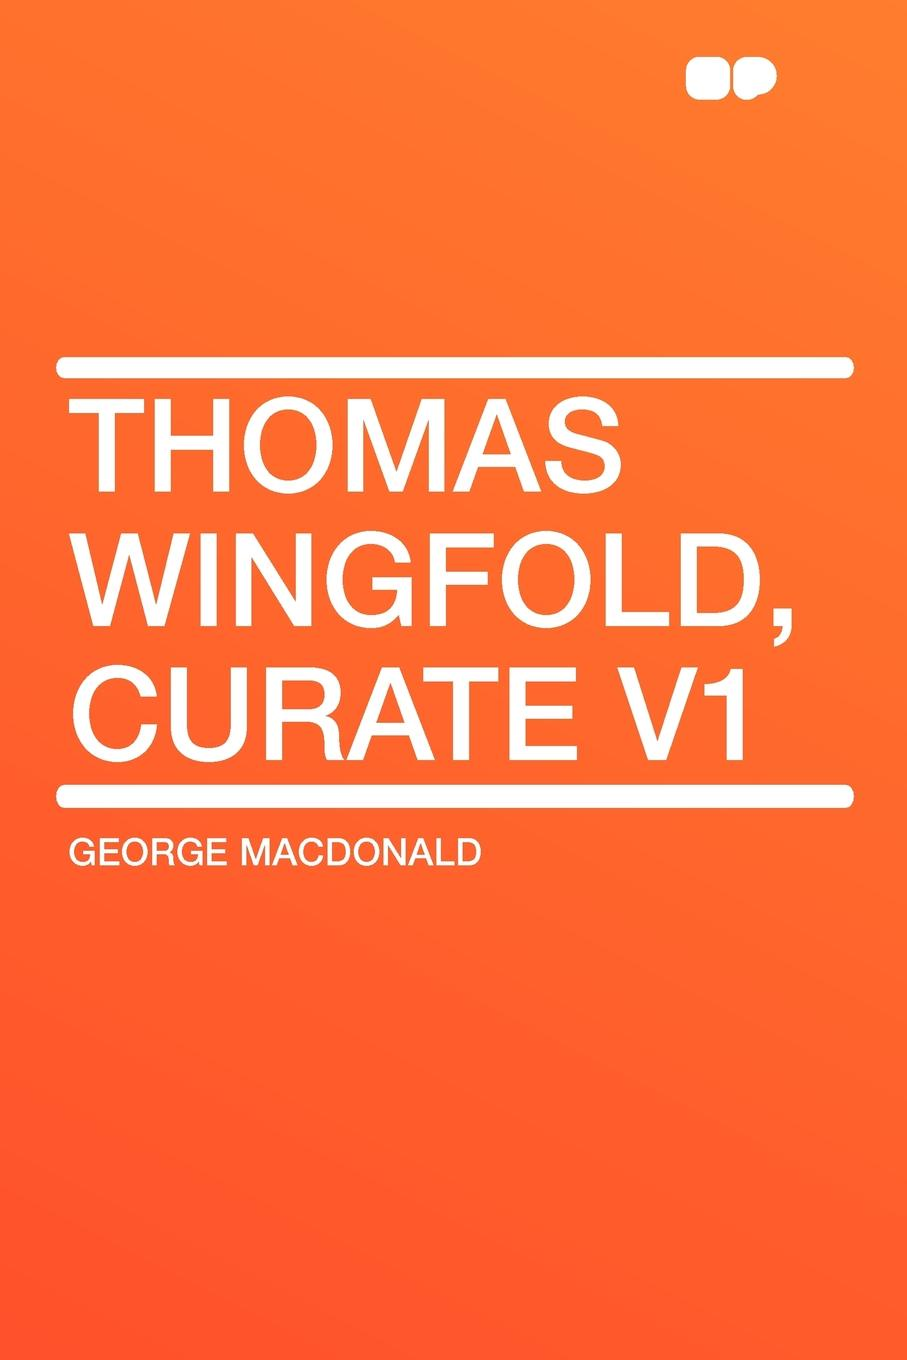 MacDonald George Thomas Wingfold, Curate V1 v1